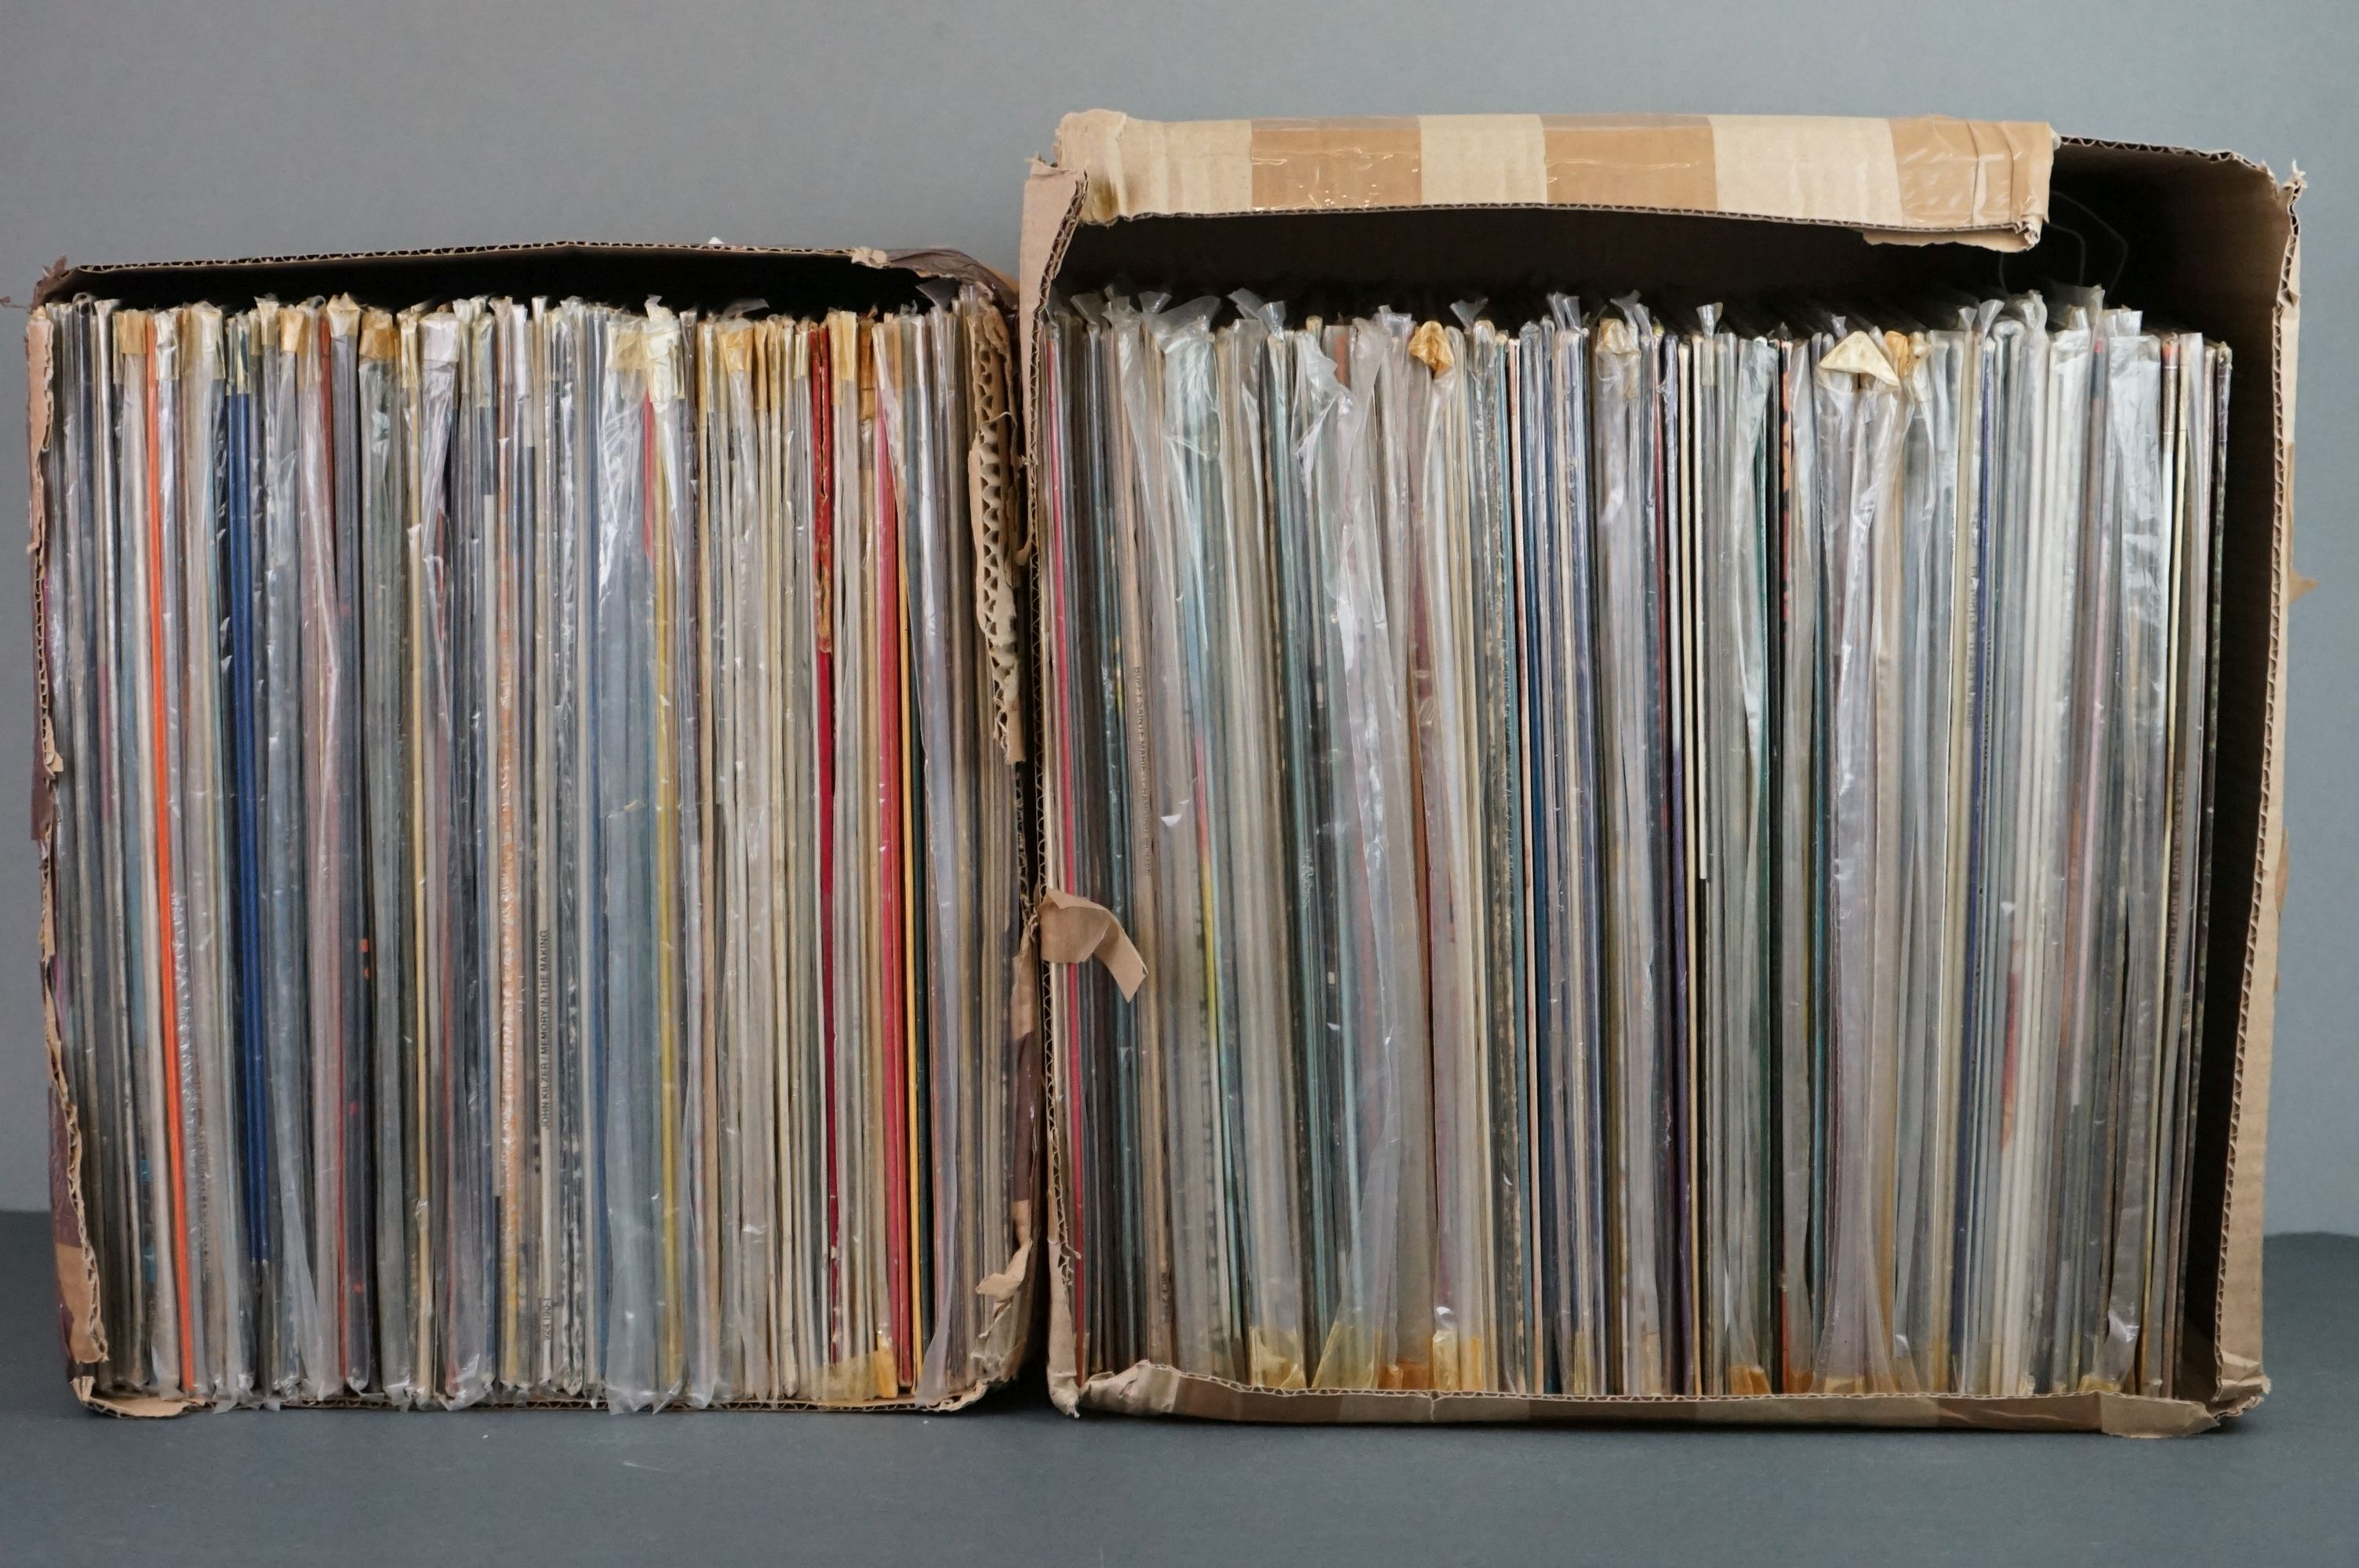 Vinyl - Around 200 LPs to include Country, Pop, Easy Listening etc, sleeves and vinyl vg+ (two - Image 2 of 4